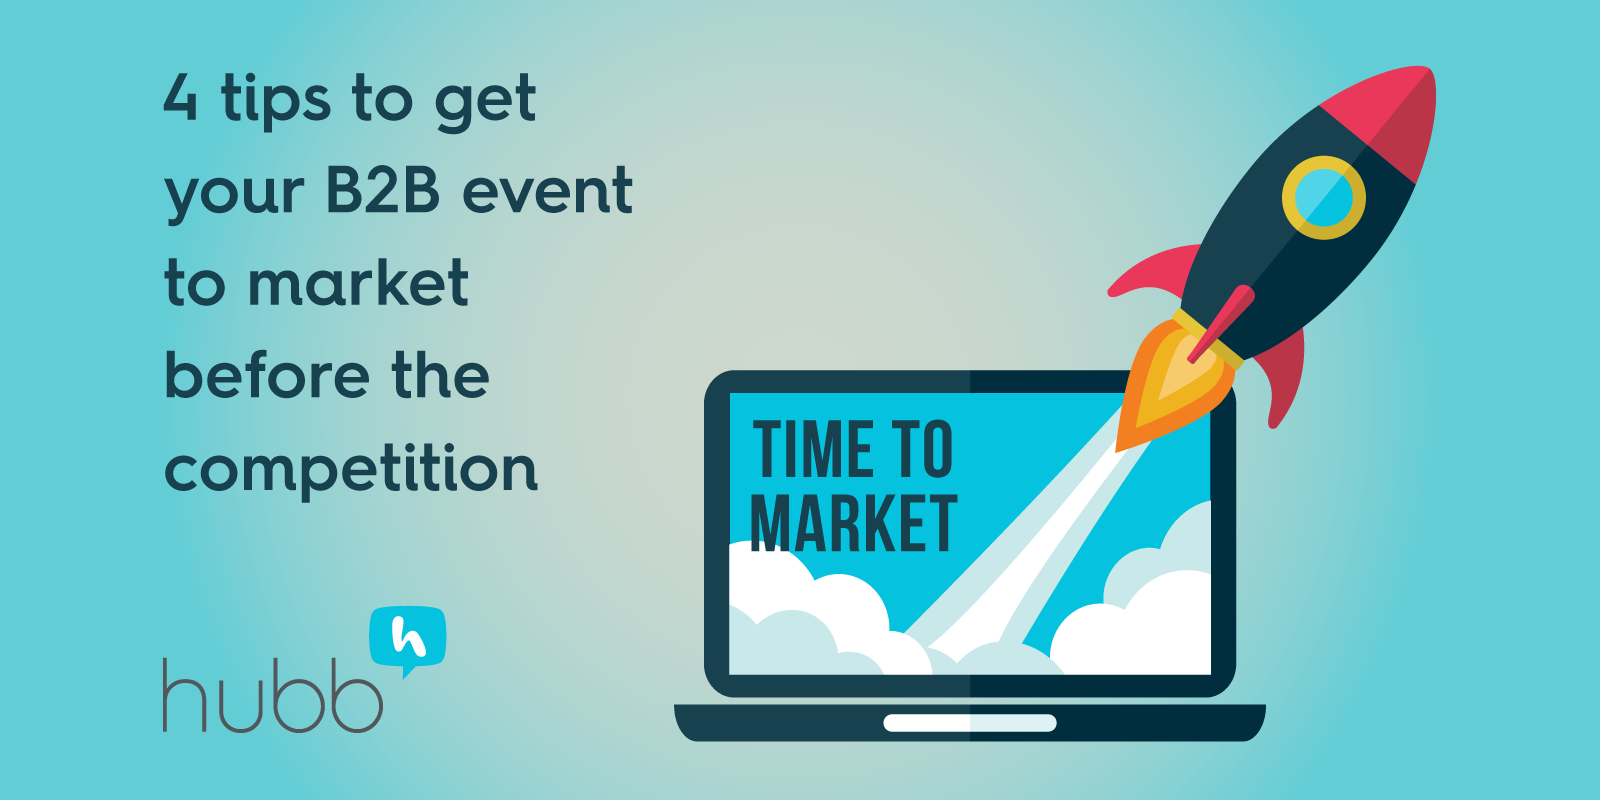 4 tips to get your B2B event to market before the competition